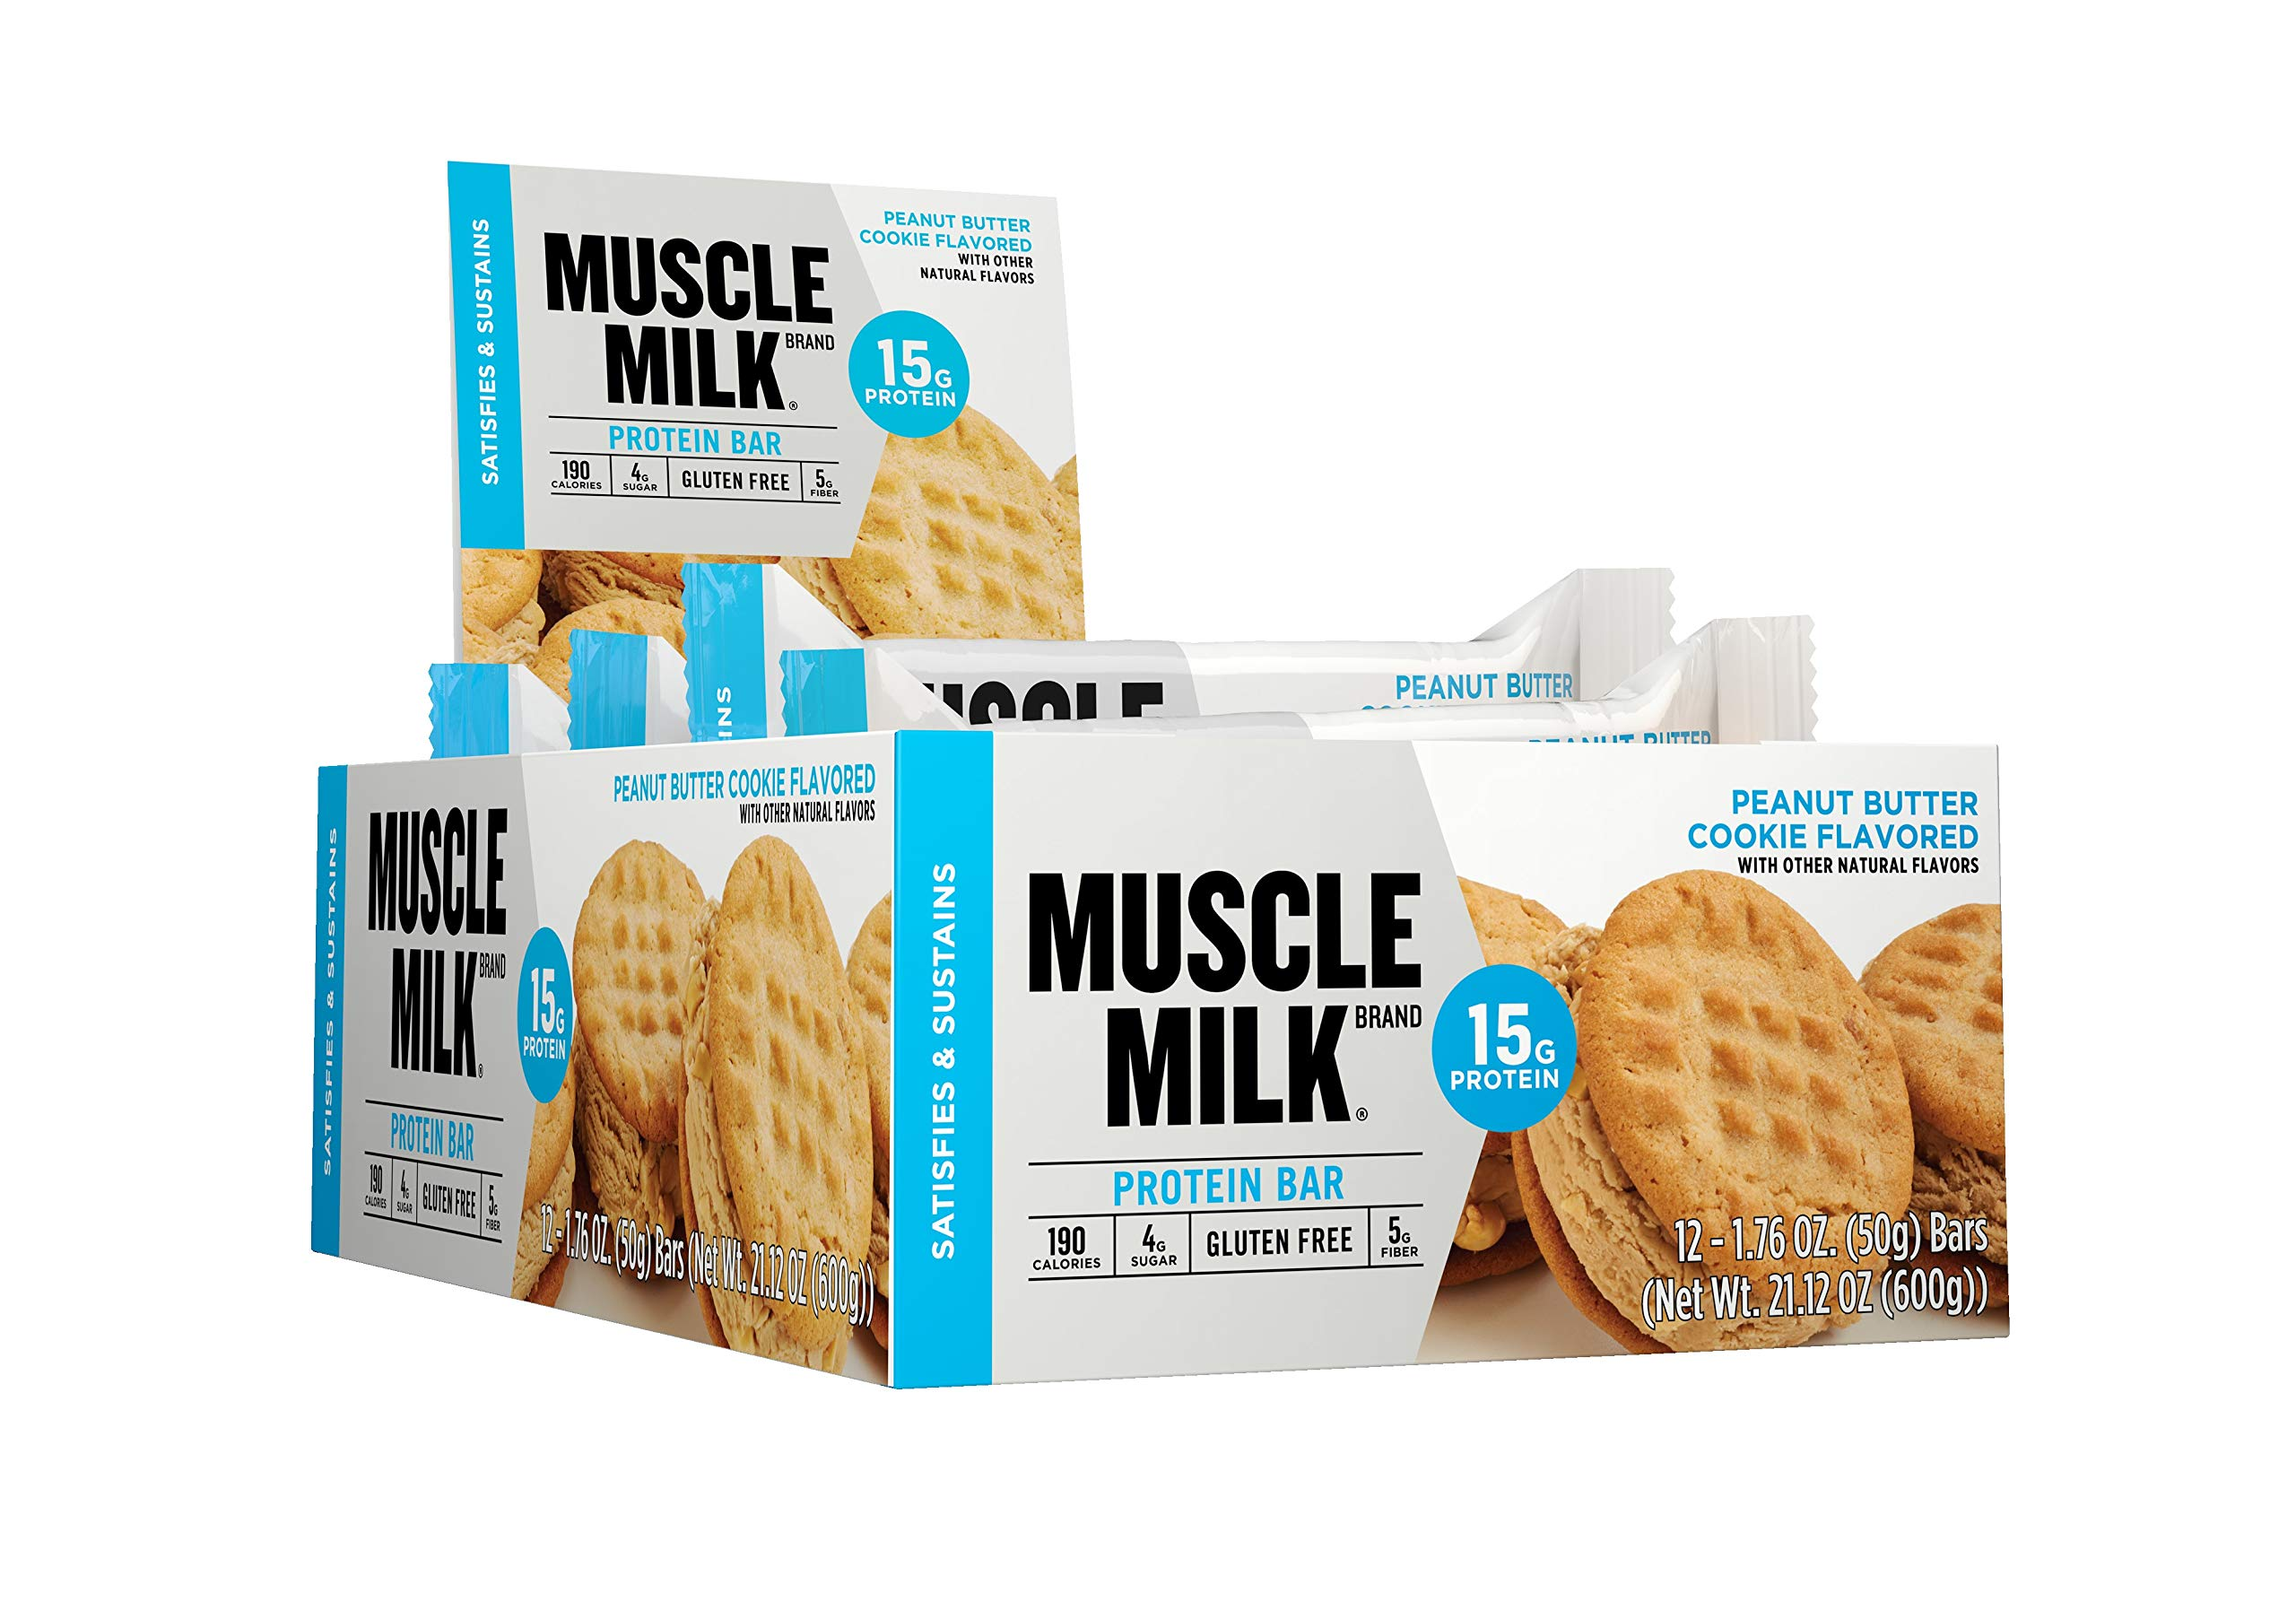 Muscle Milk Protein Bar, Peanut Butter Cookie, 15g Protein, 12 Count by CytoSport